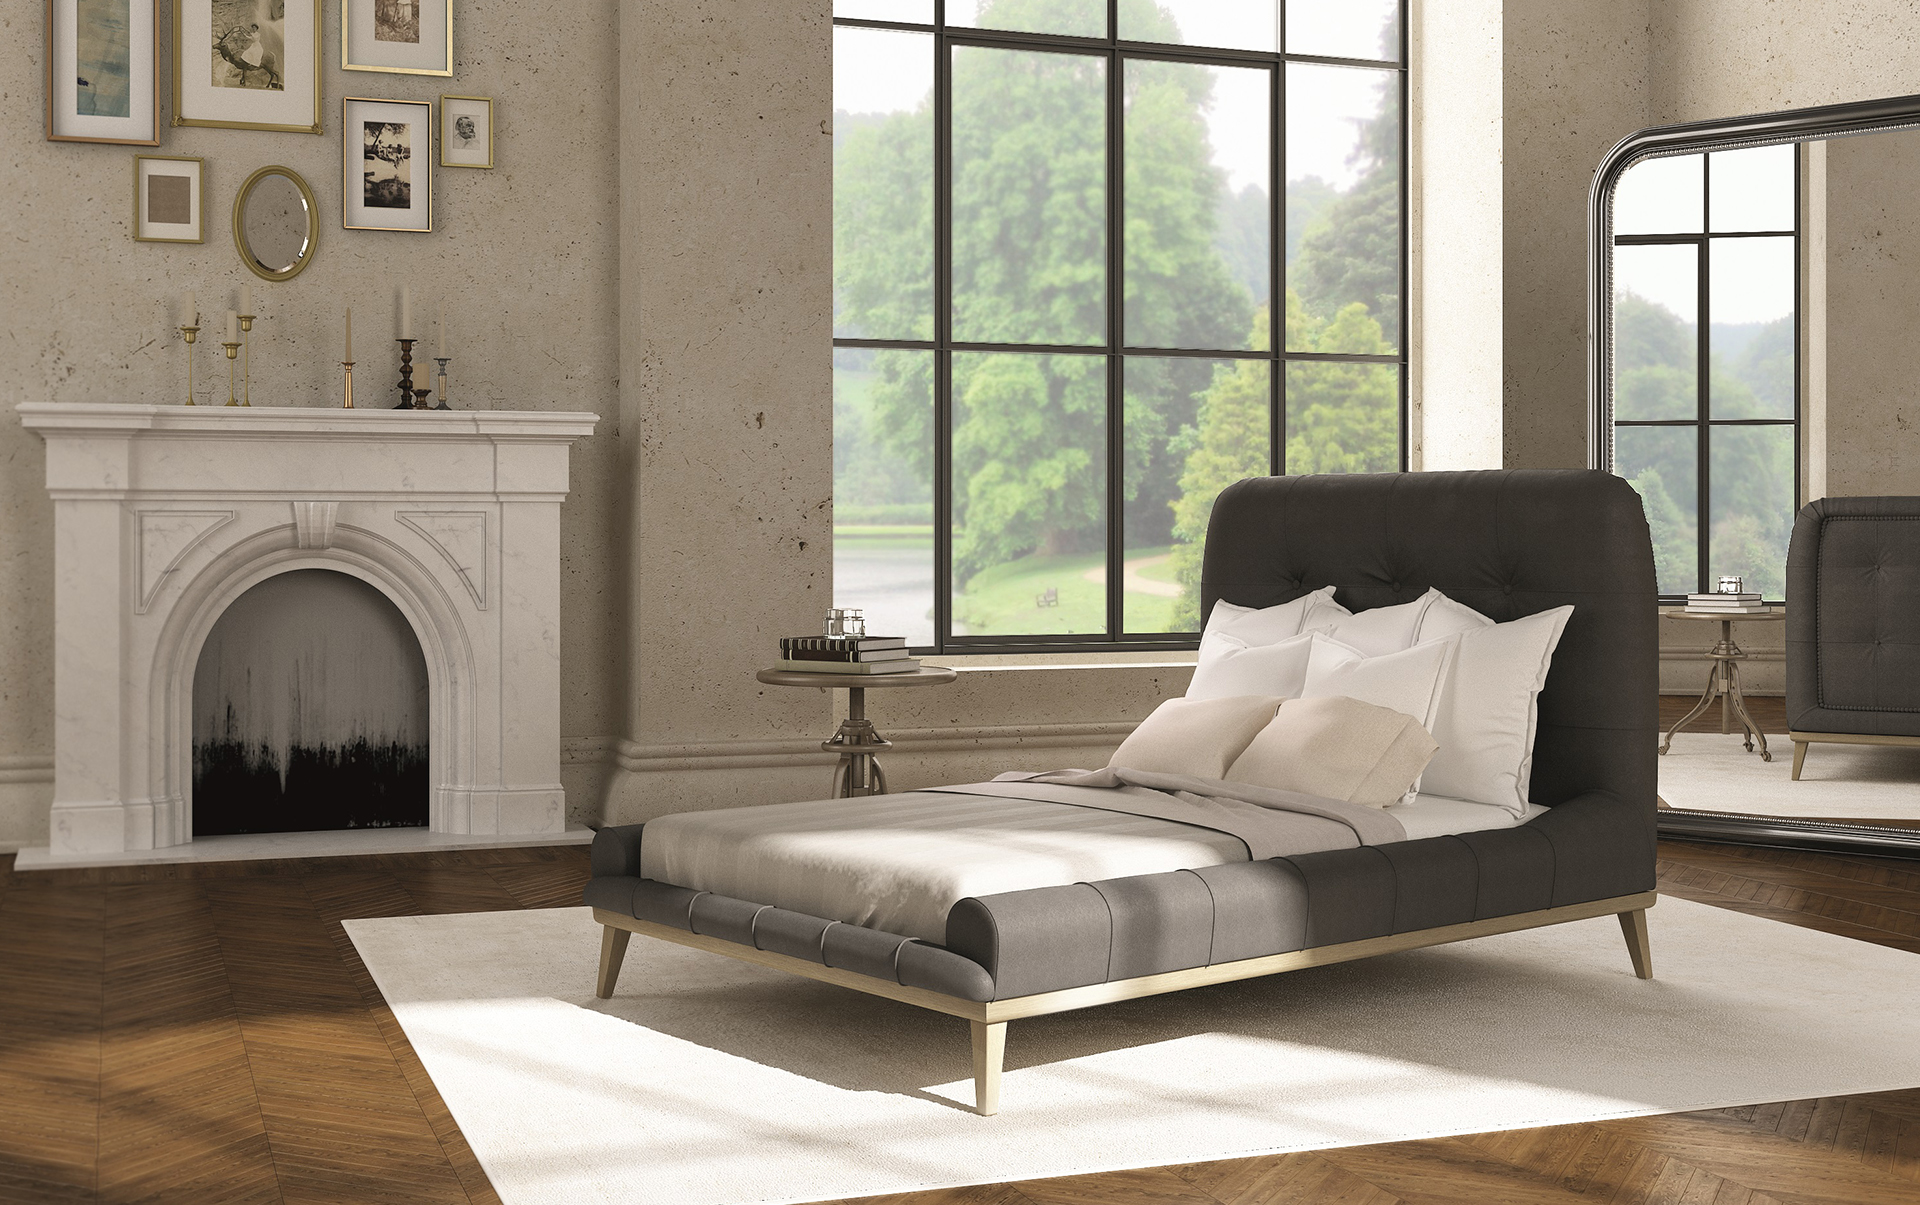 Best luxury modern style furniture from top European manufacturers